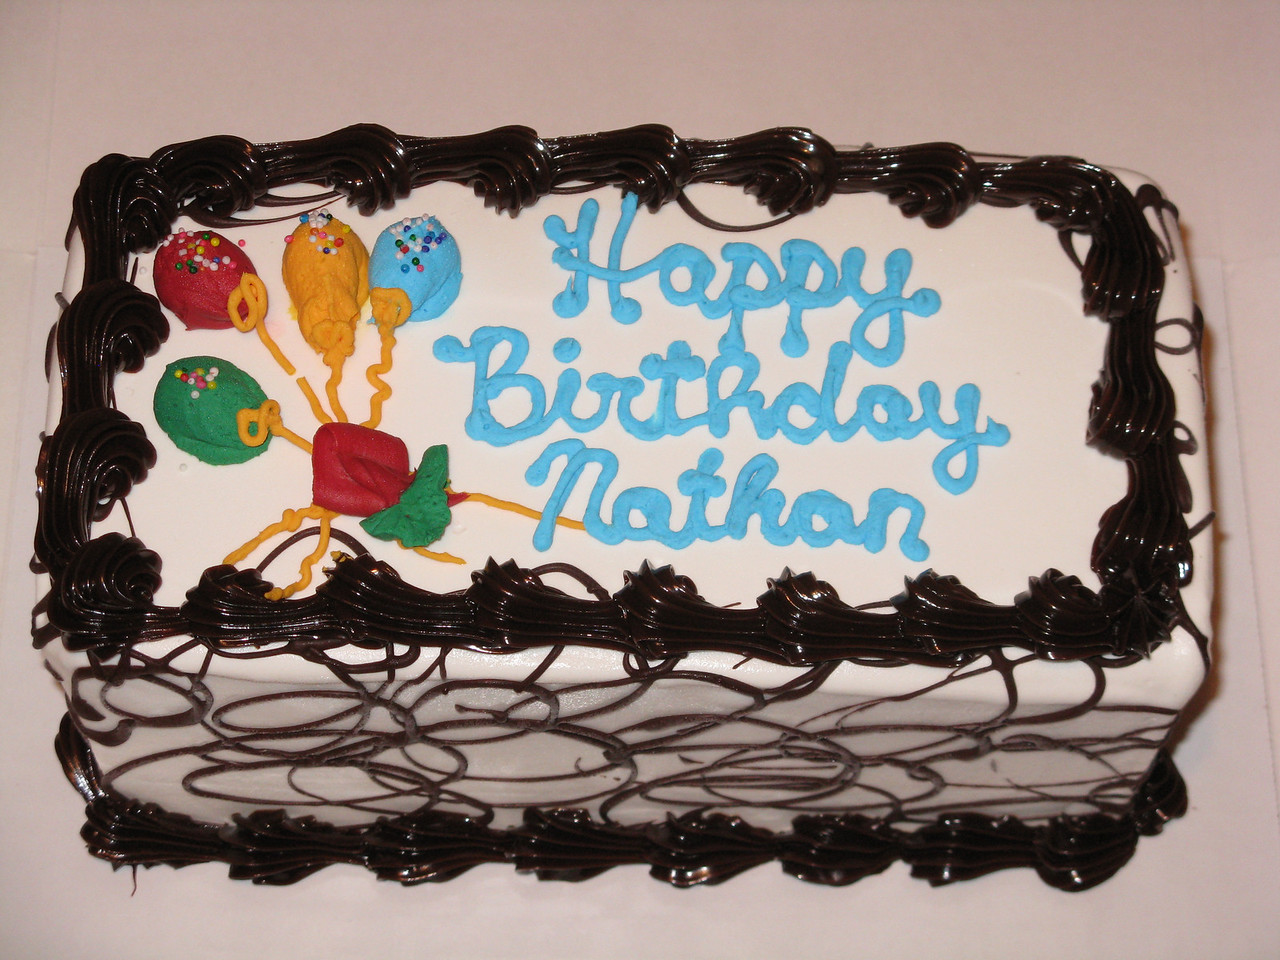 On Oct 22, we celebrated Nathan's birthday.